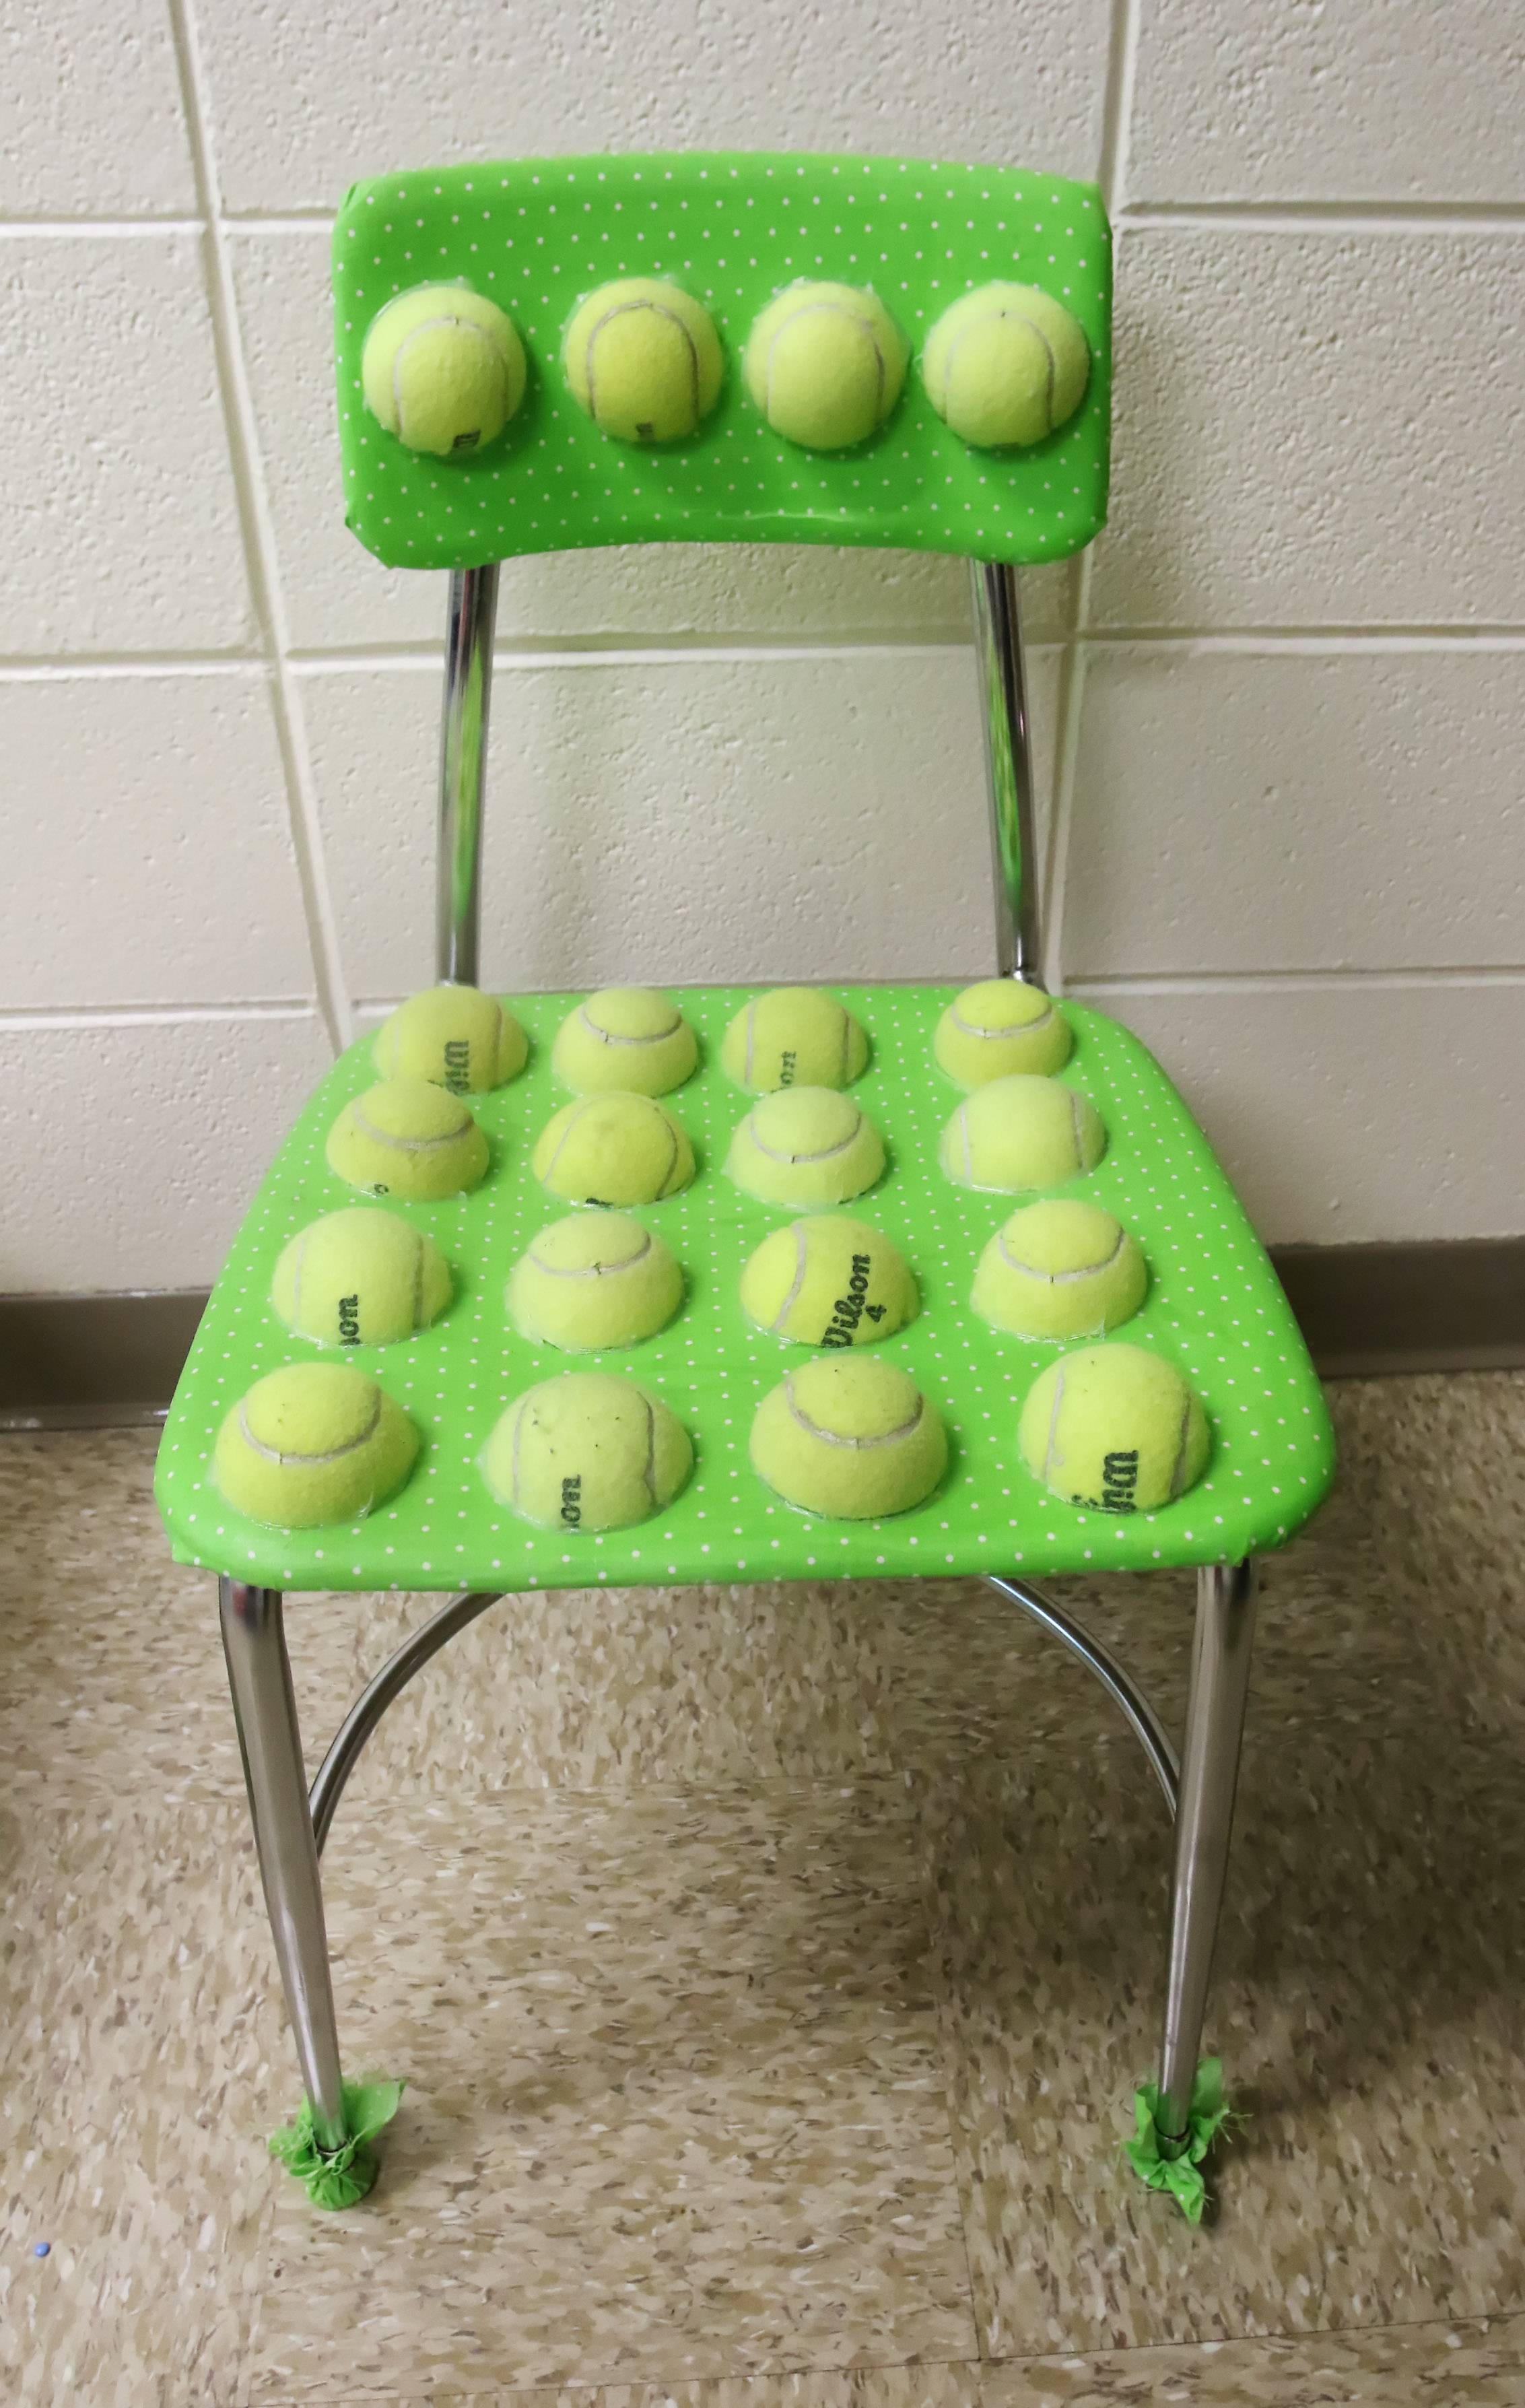 Speech language pathologist Amy Maplethorpe created two tennis ball sensory chairs in use at Raymond Ellis & Teacheru0027s DIY tennis ball chairs for kids with special needs go ...